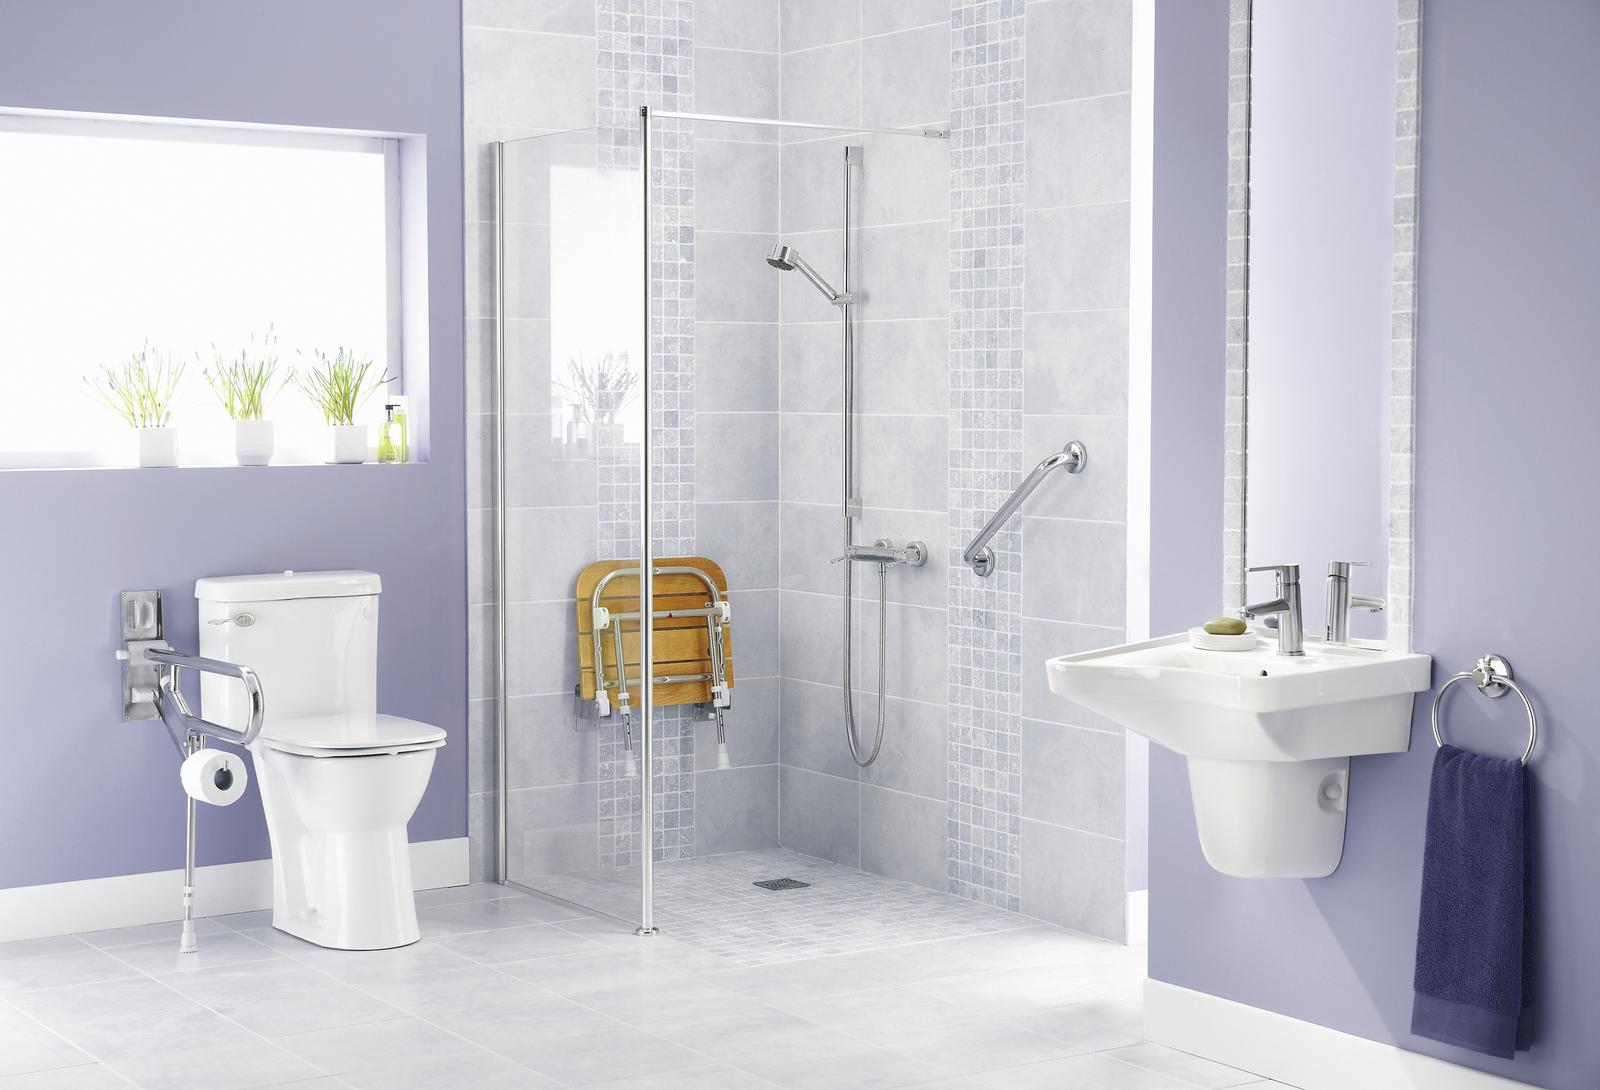 Bathroom Products Bathroom Safety Products At Wellness Medical Equipment And